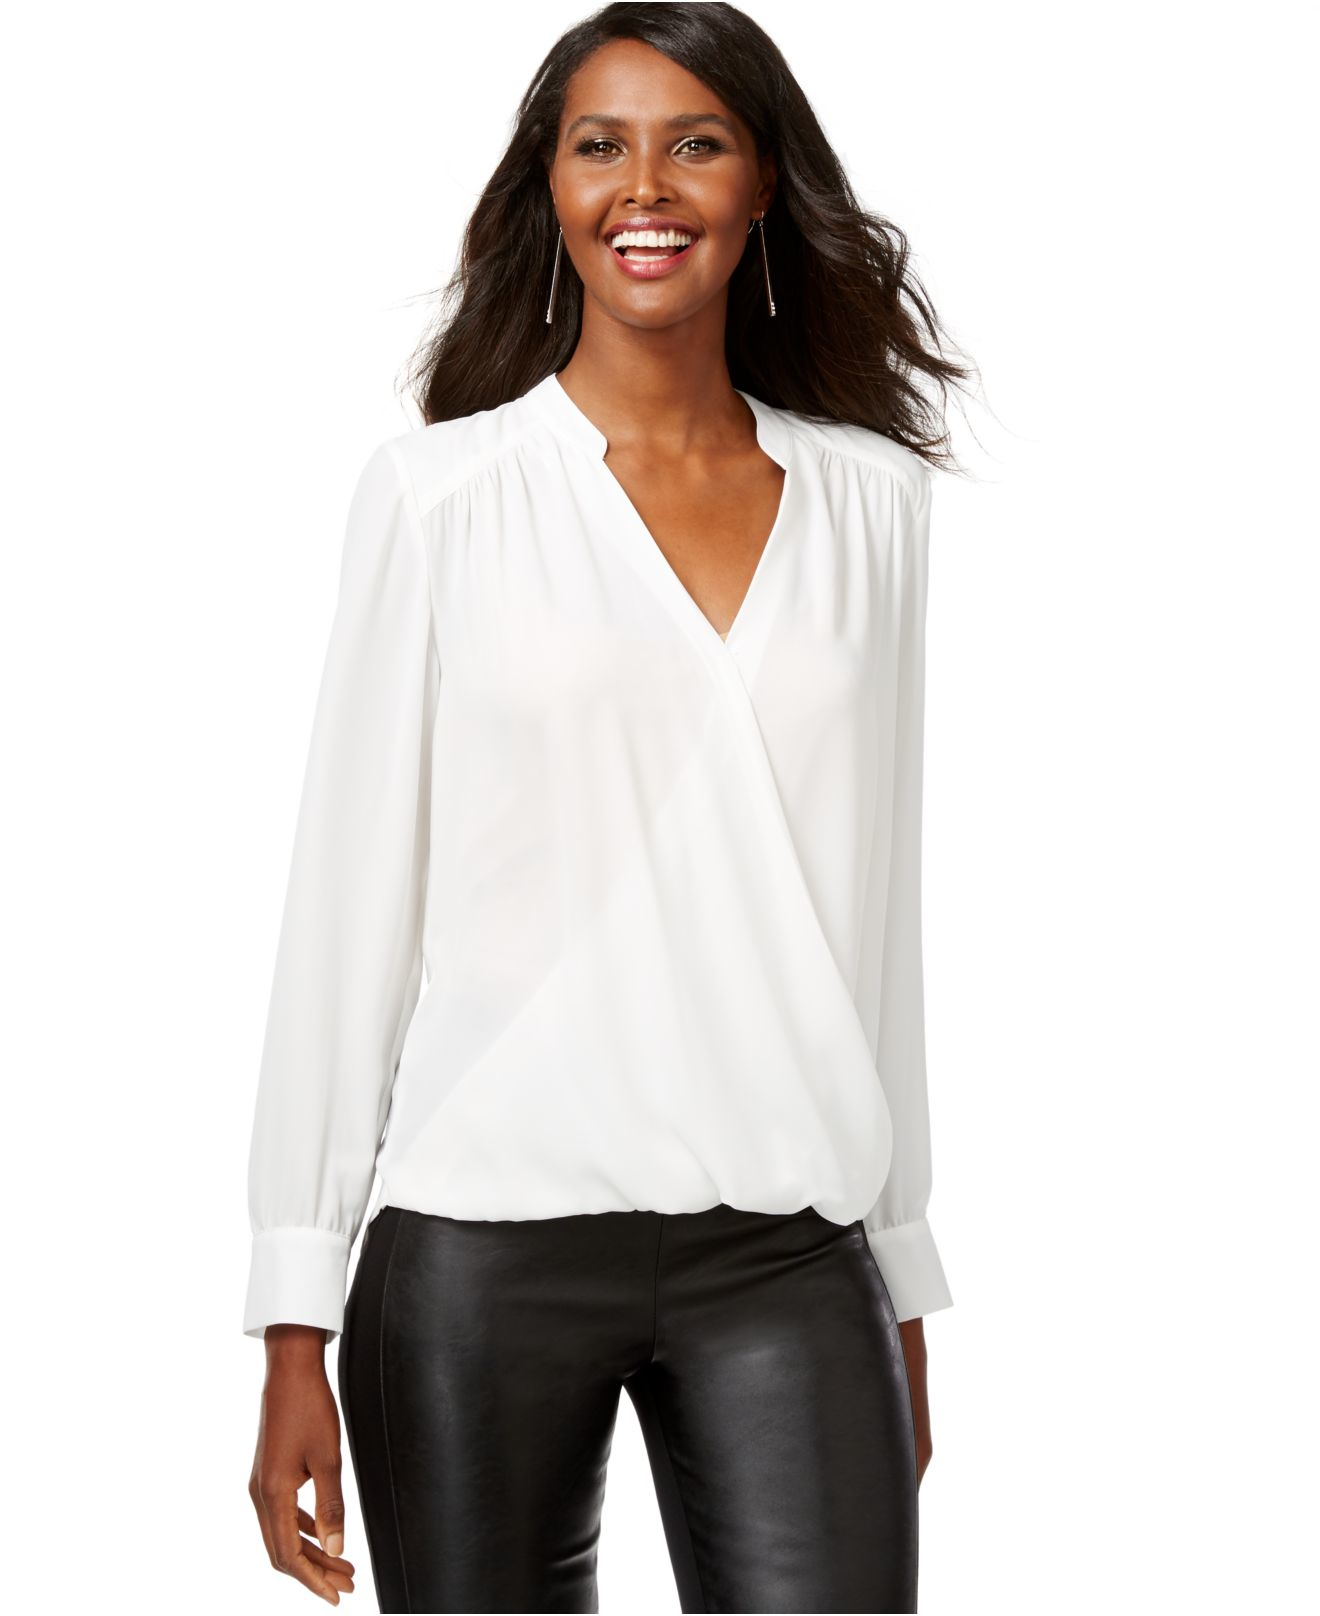 Macys Womens Long Sleeve Blouse 21